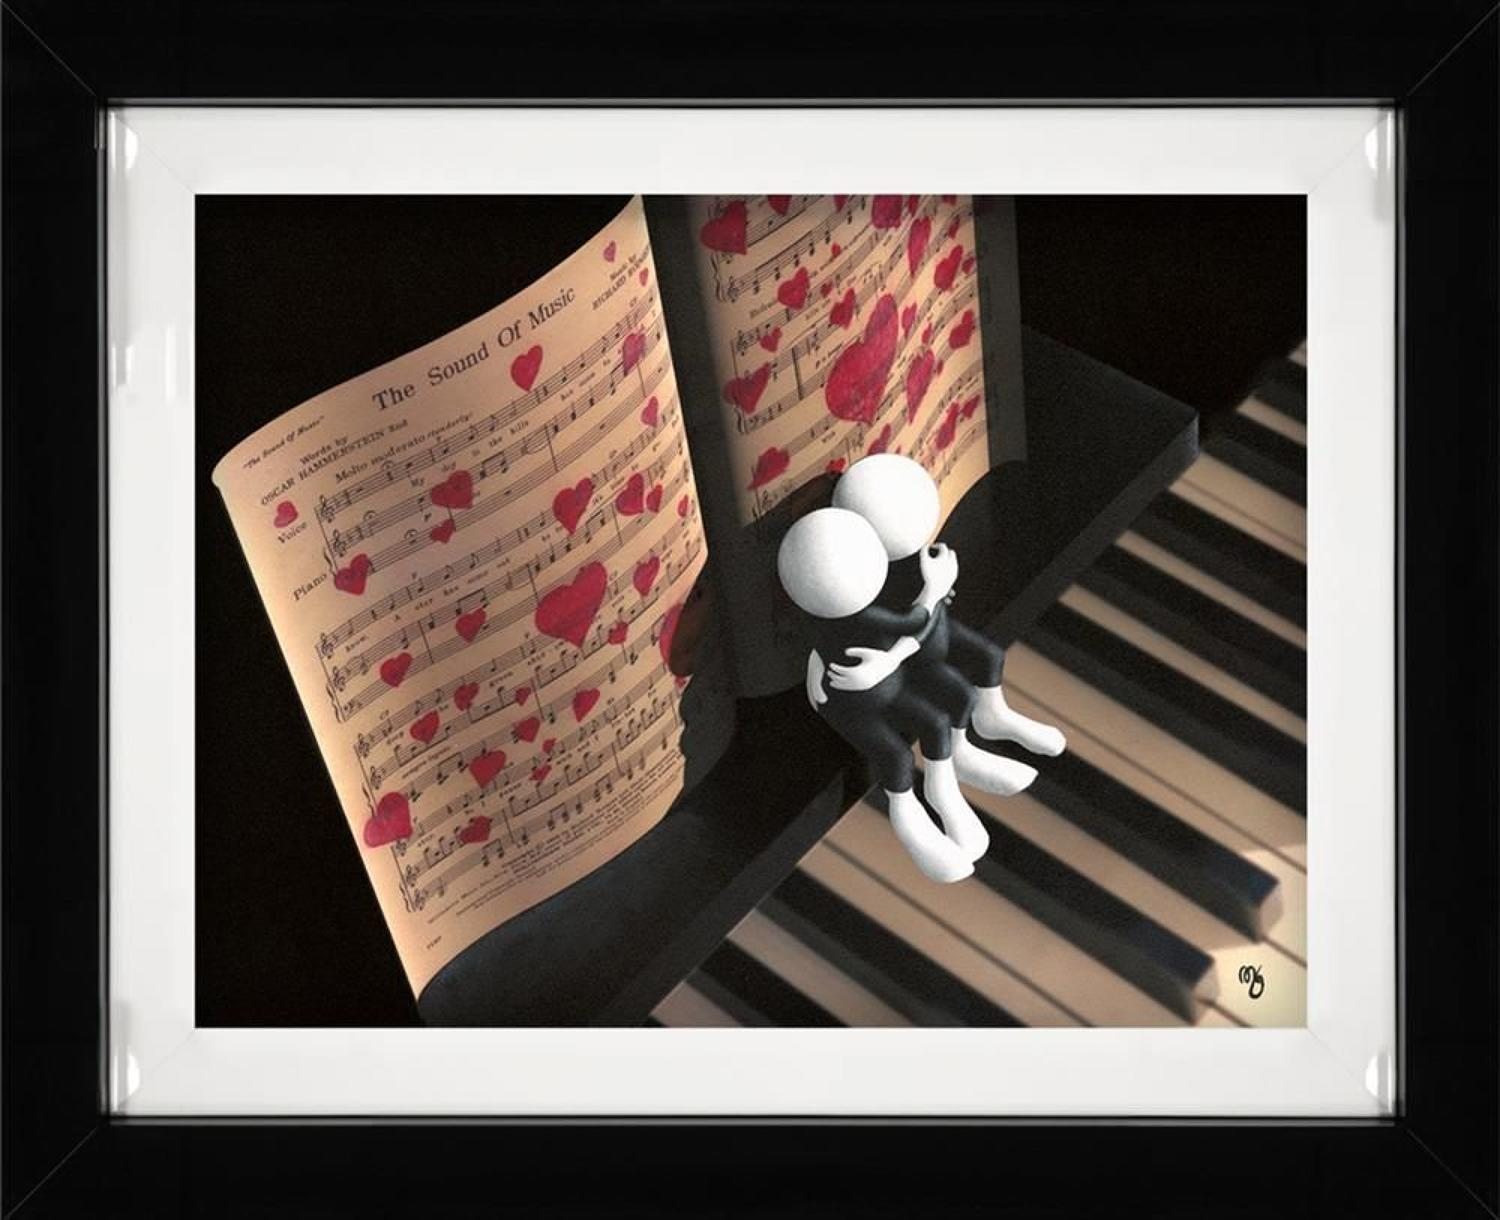 The Sound Of Music Framed Art Print By Mark Grieves